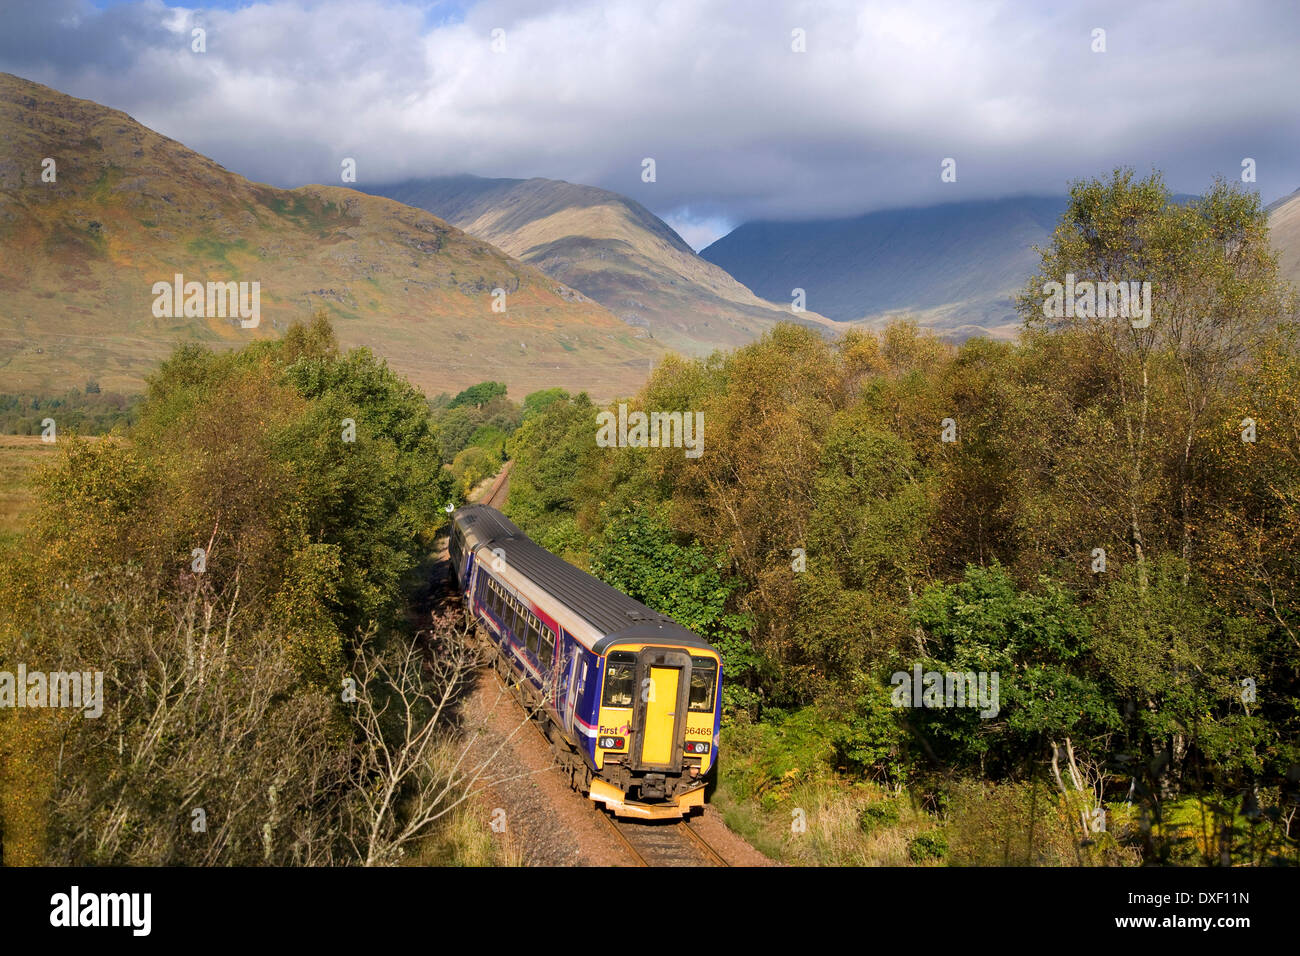 156 First Scotrail Sprinter unit, Loch Aweside. - Stock Image